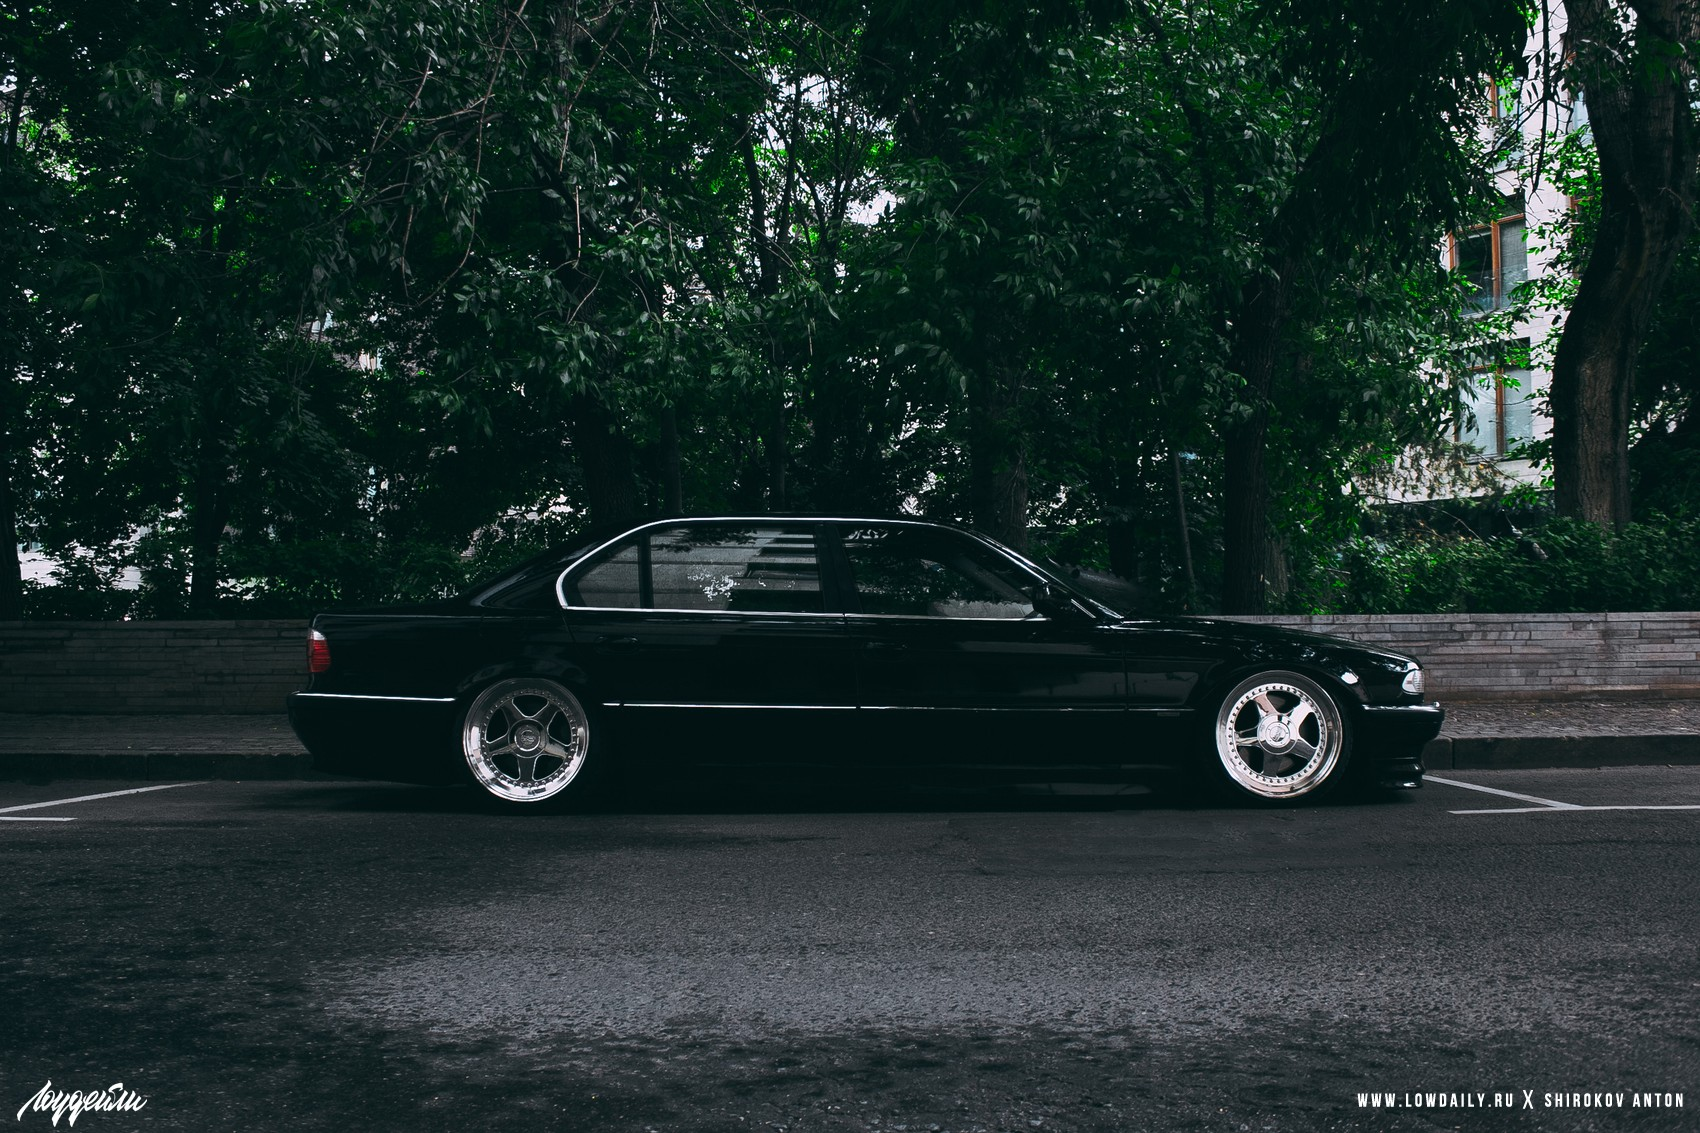 BMW E38 Lowdaily _MG_7097